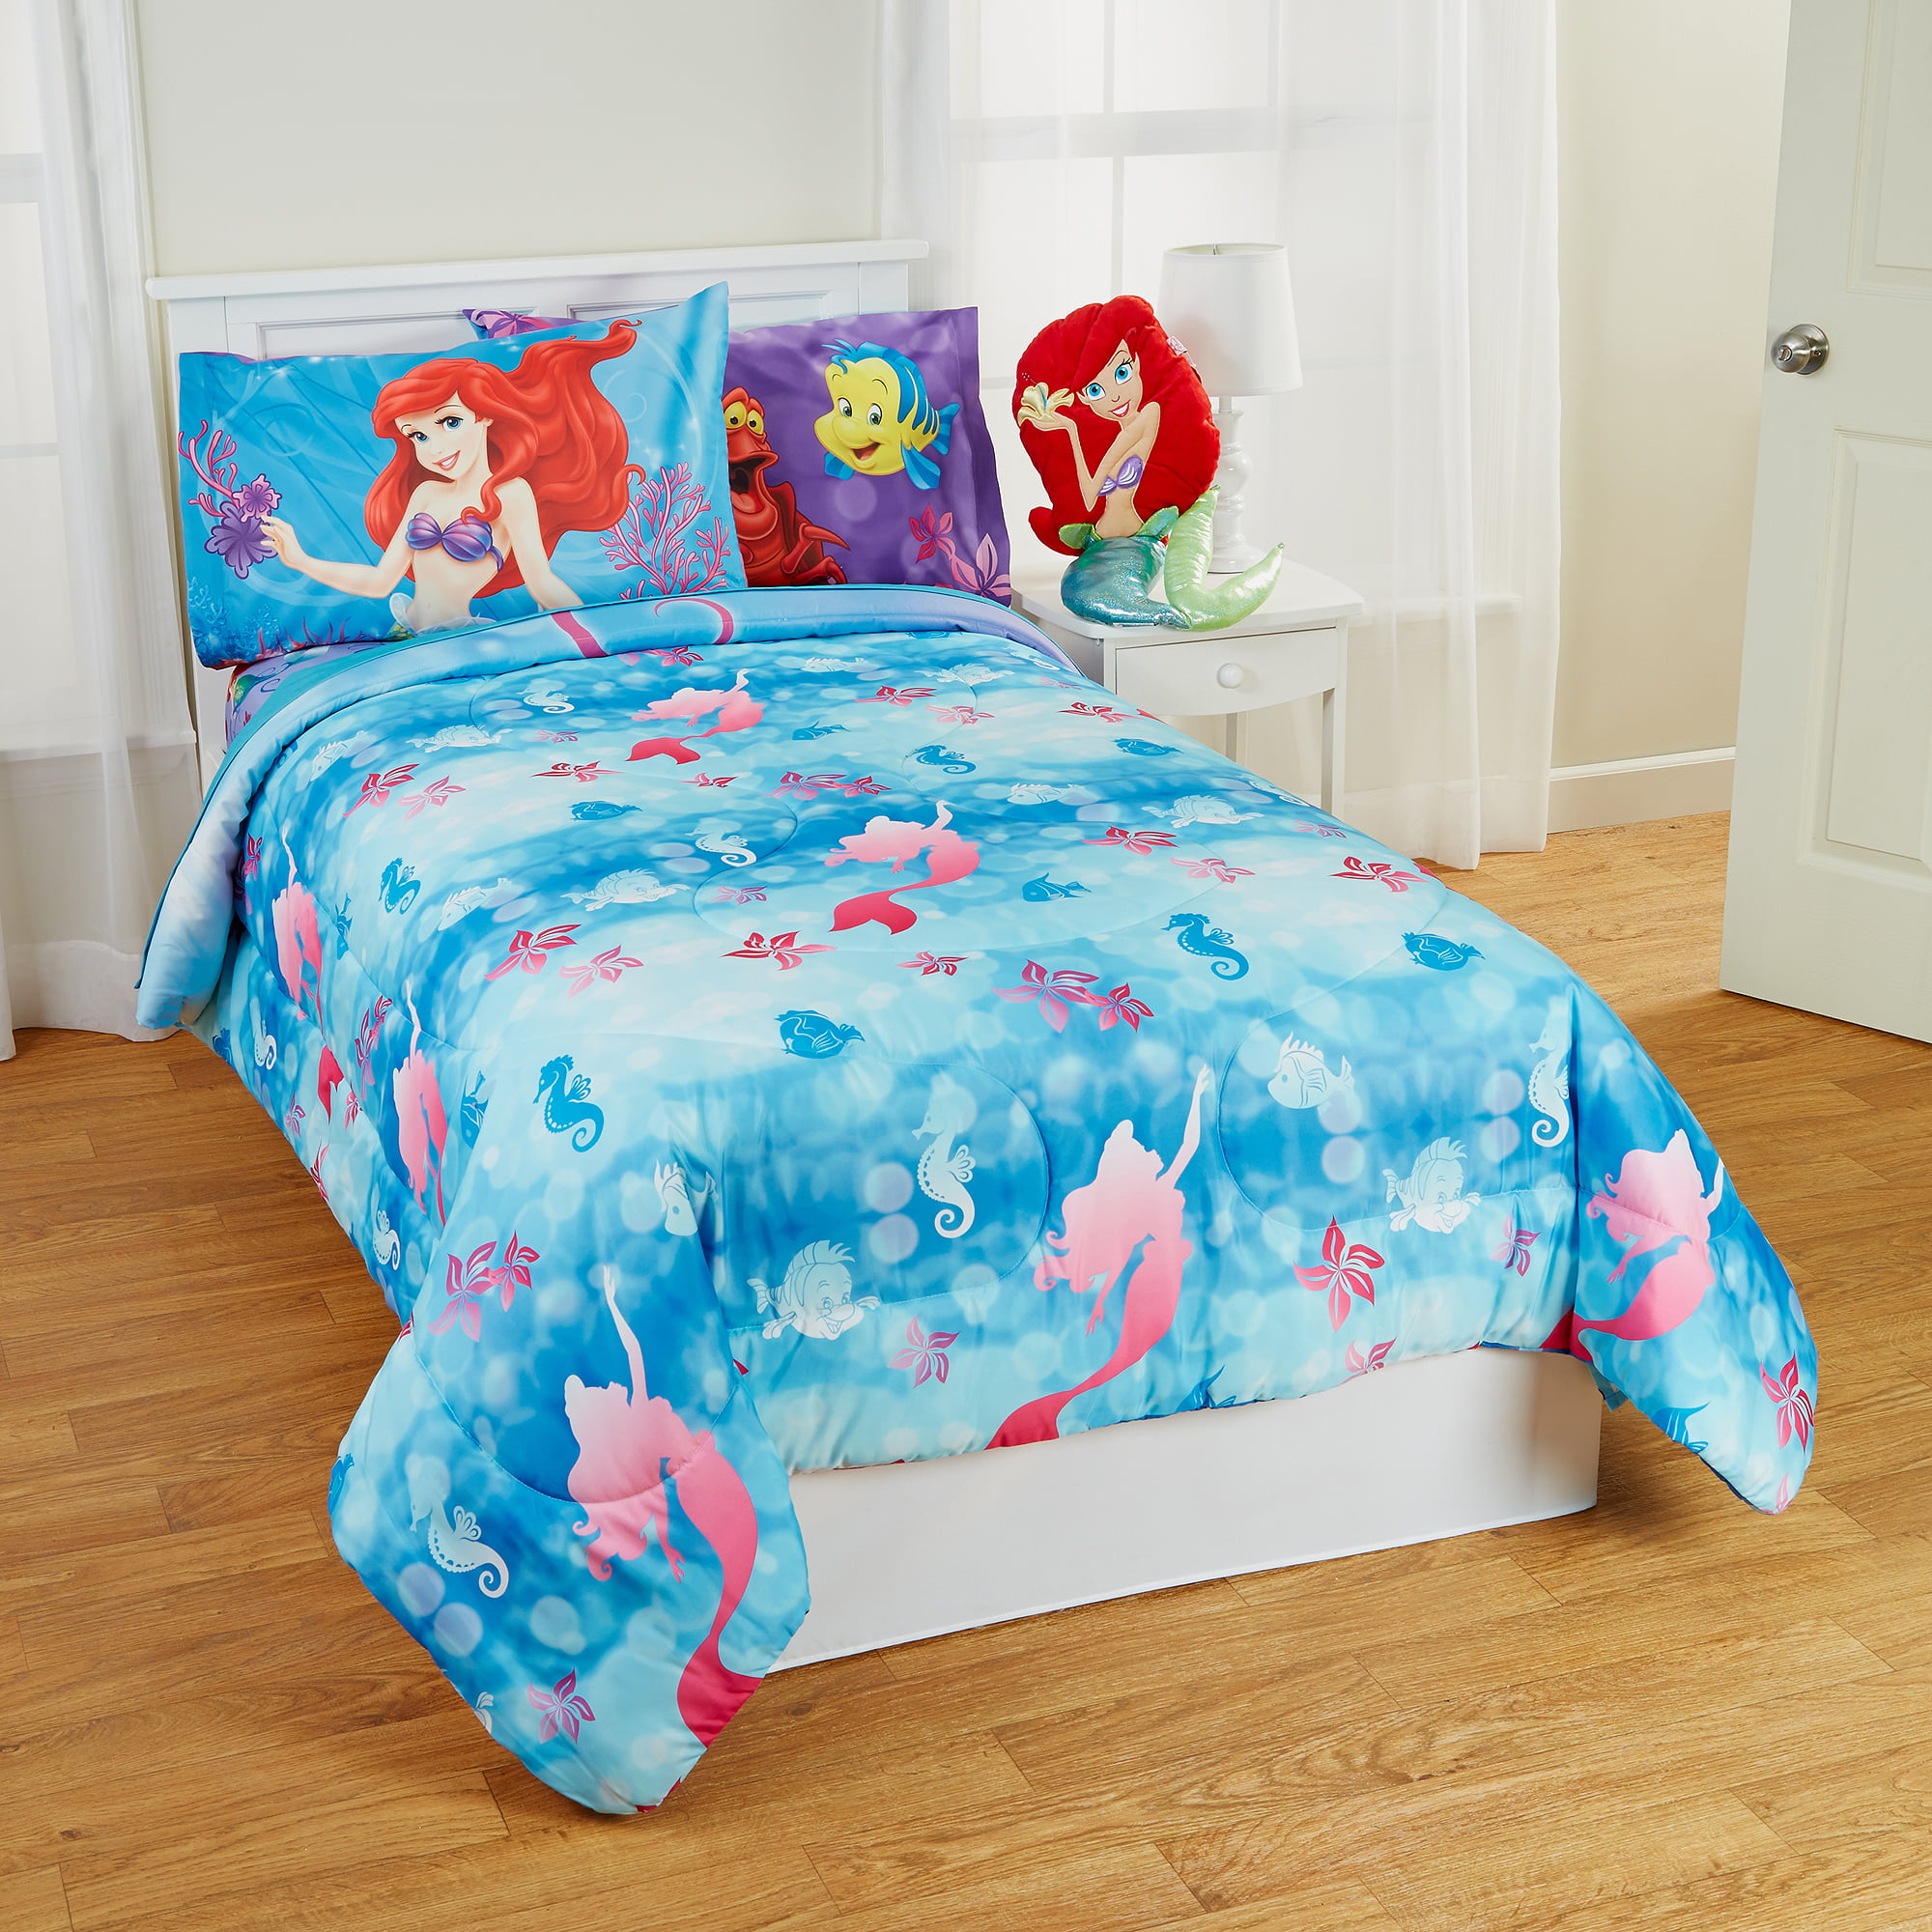 Little mermaid bedroom - The Little Mermaid Bedroom Set Bedroom Decor